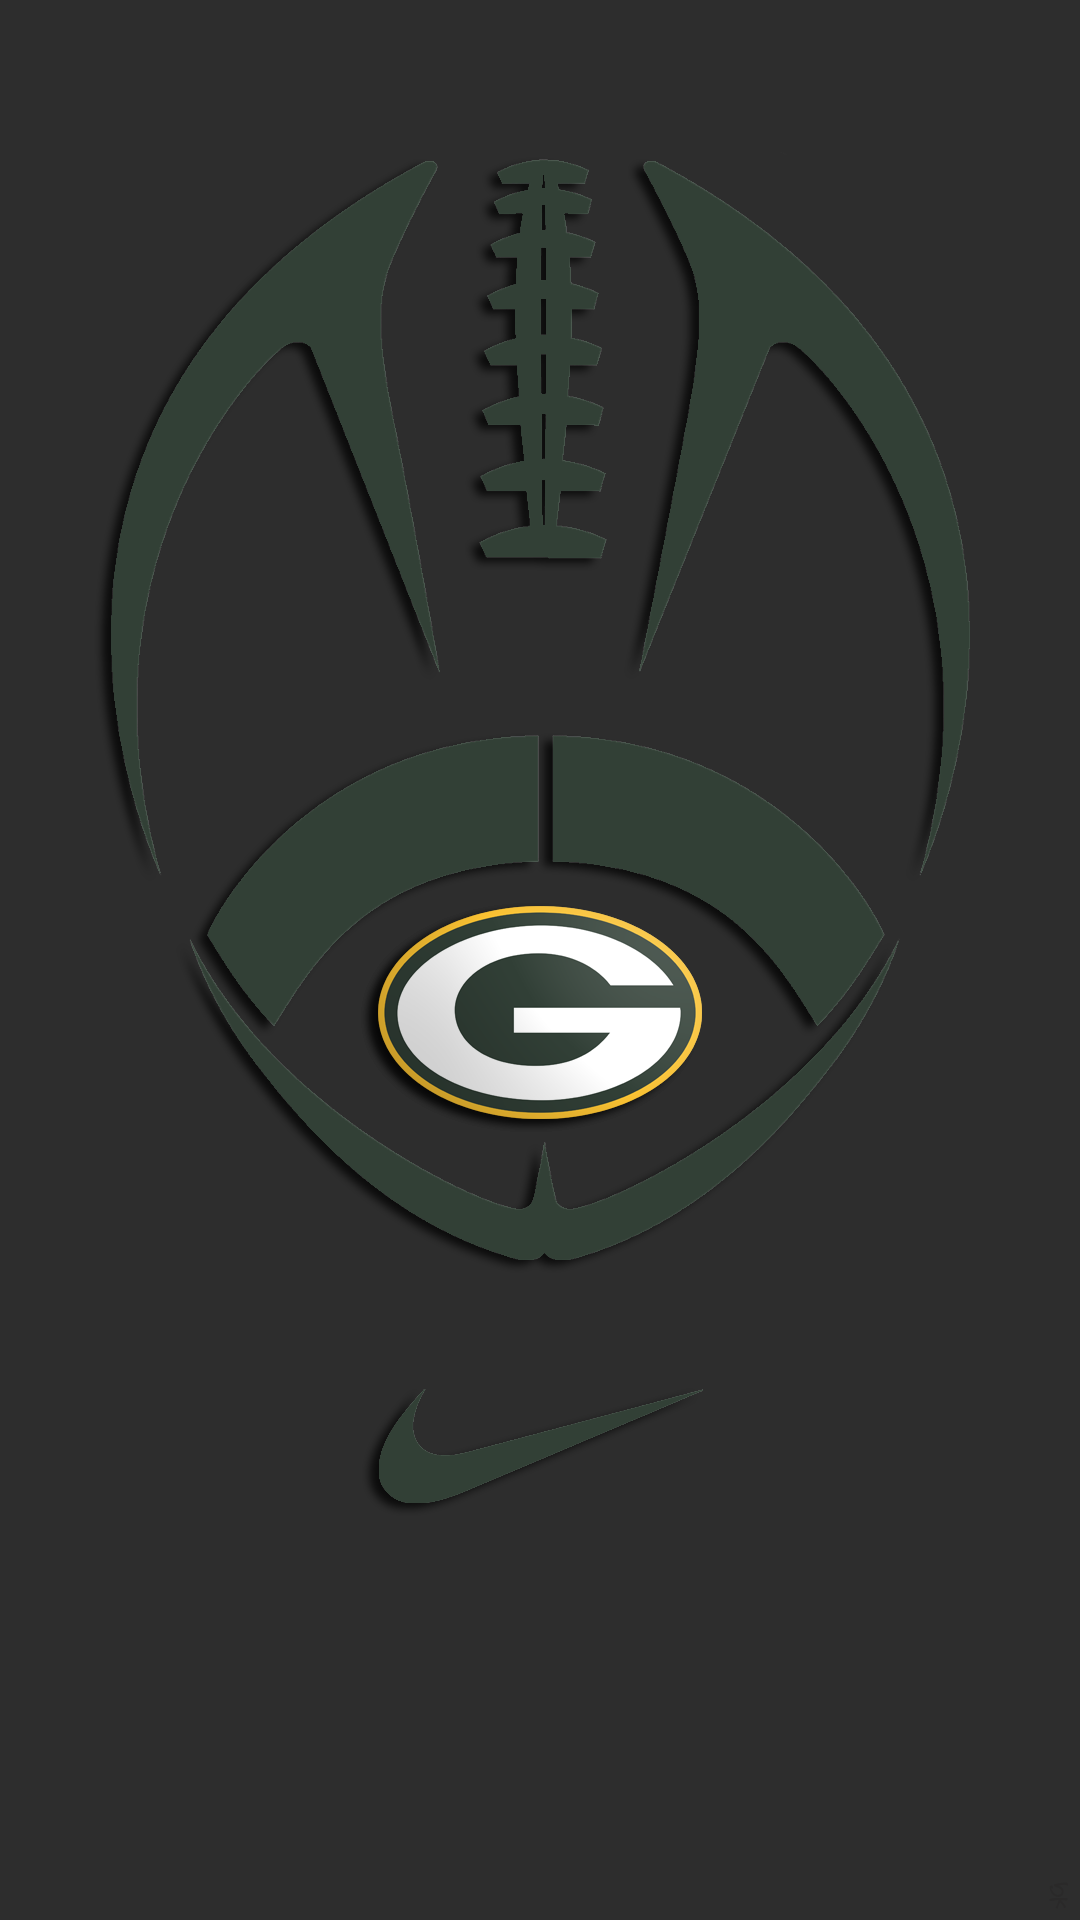 Green Bay Packers 01 Png 580637 1080 1920 Green Bay Packers Logo Green Bay Packers Wallpaper Green Bay Packers Room